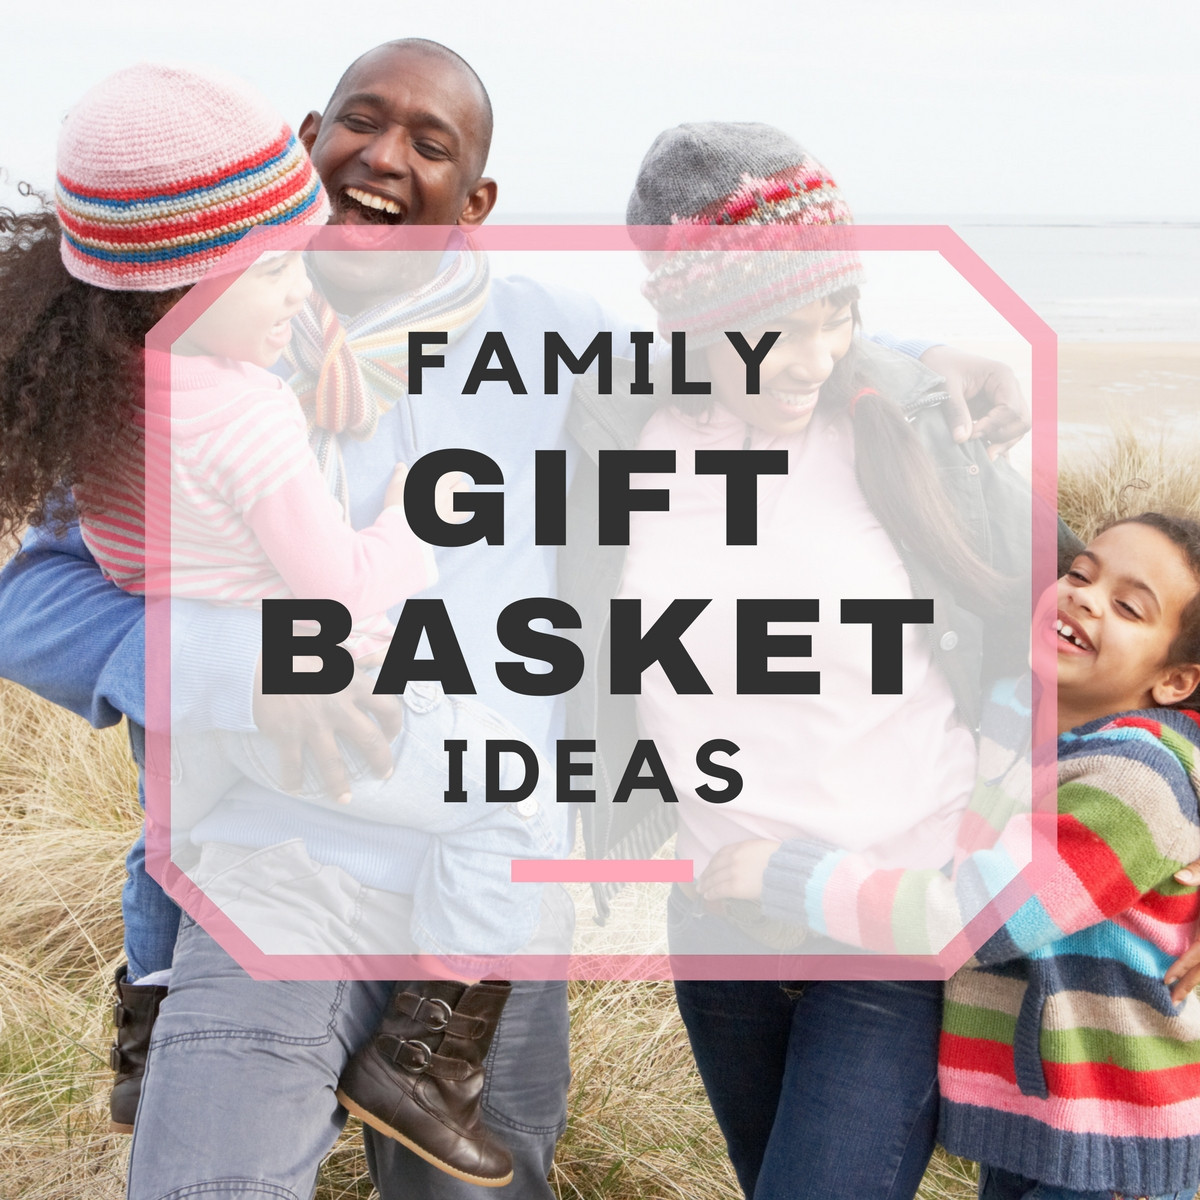 Best ideas about Gift Ideas For Families . Save or Pin 10 Best Family Gift Basket Ideas Now.